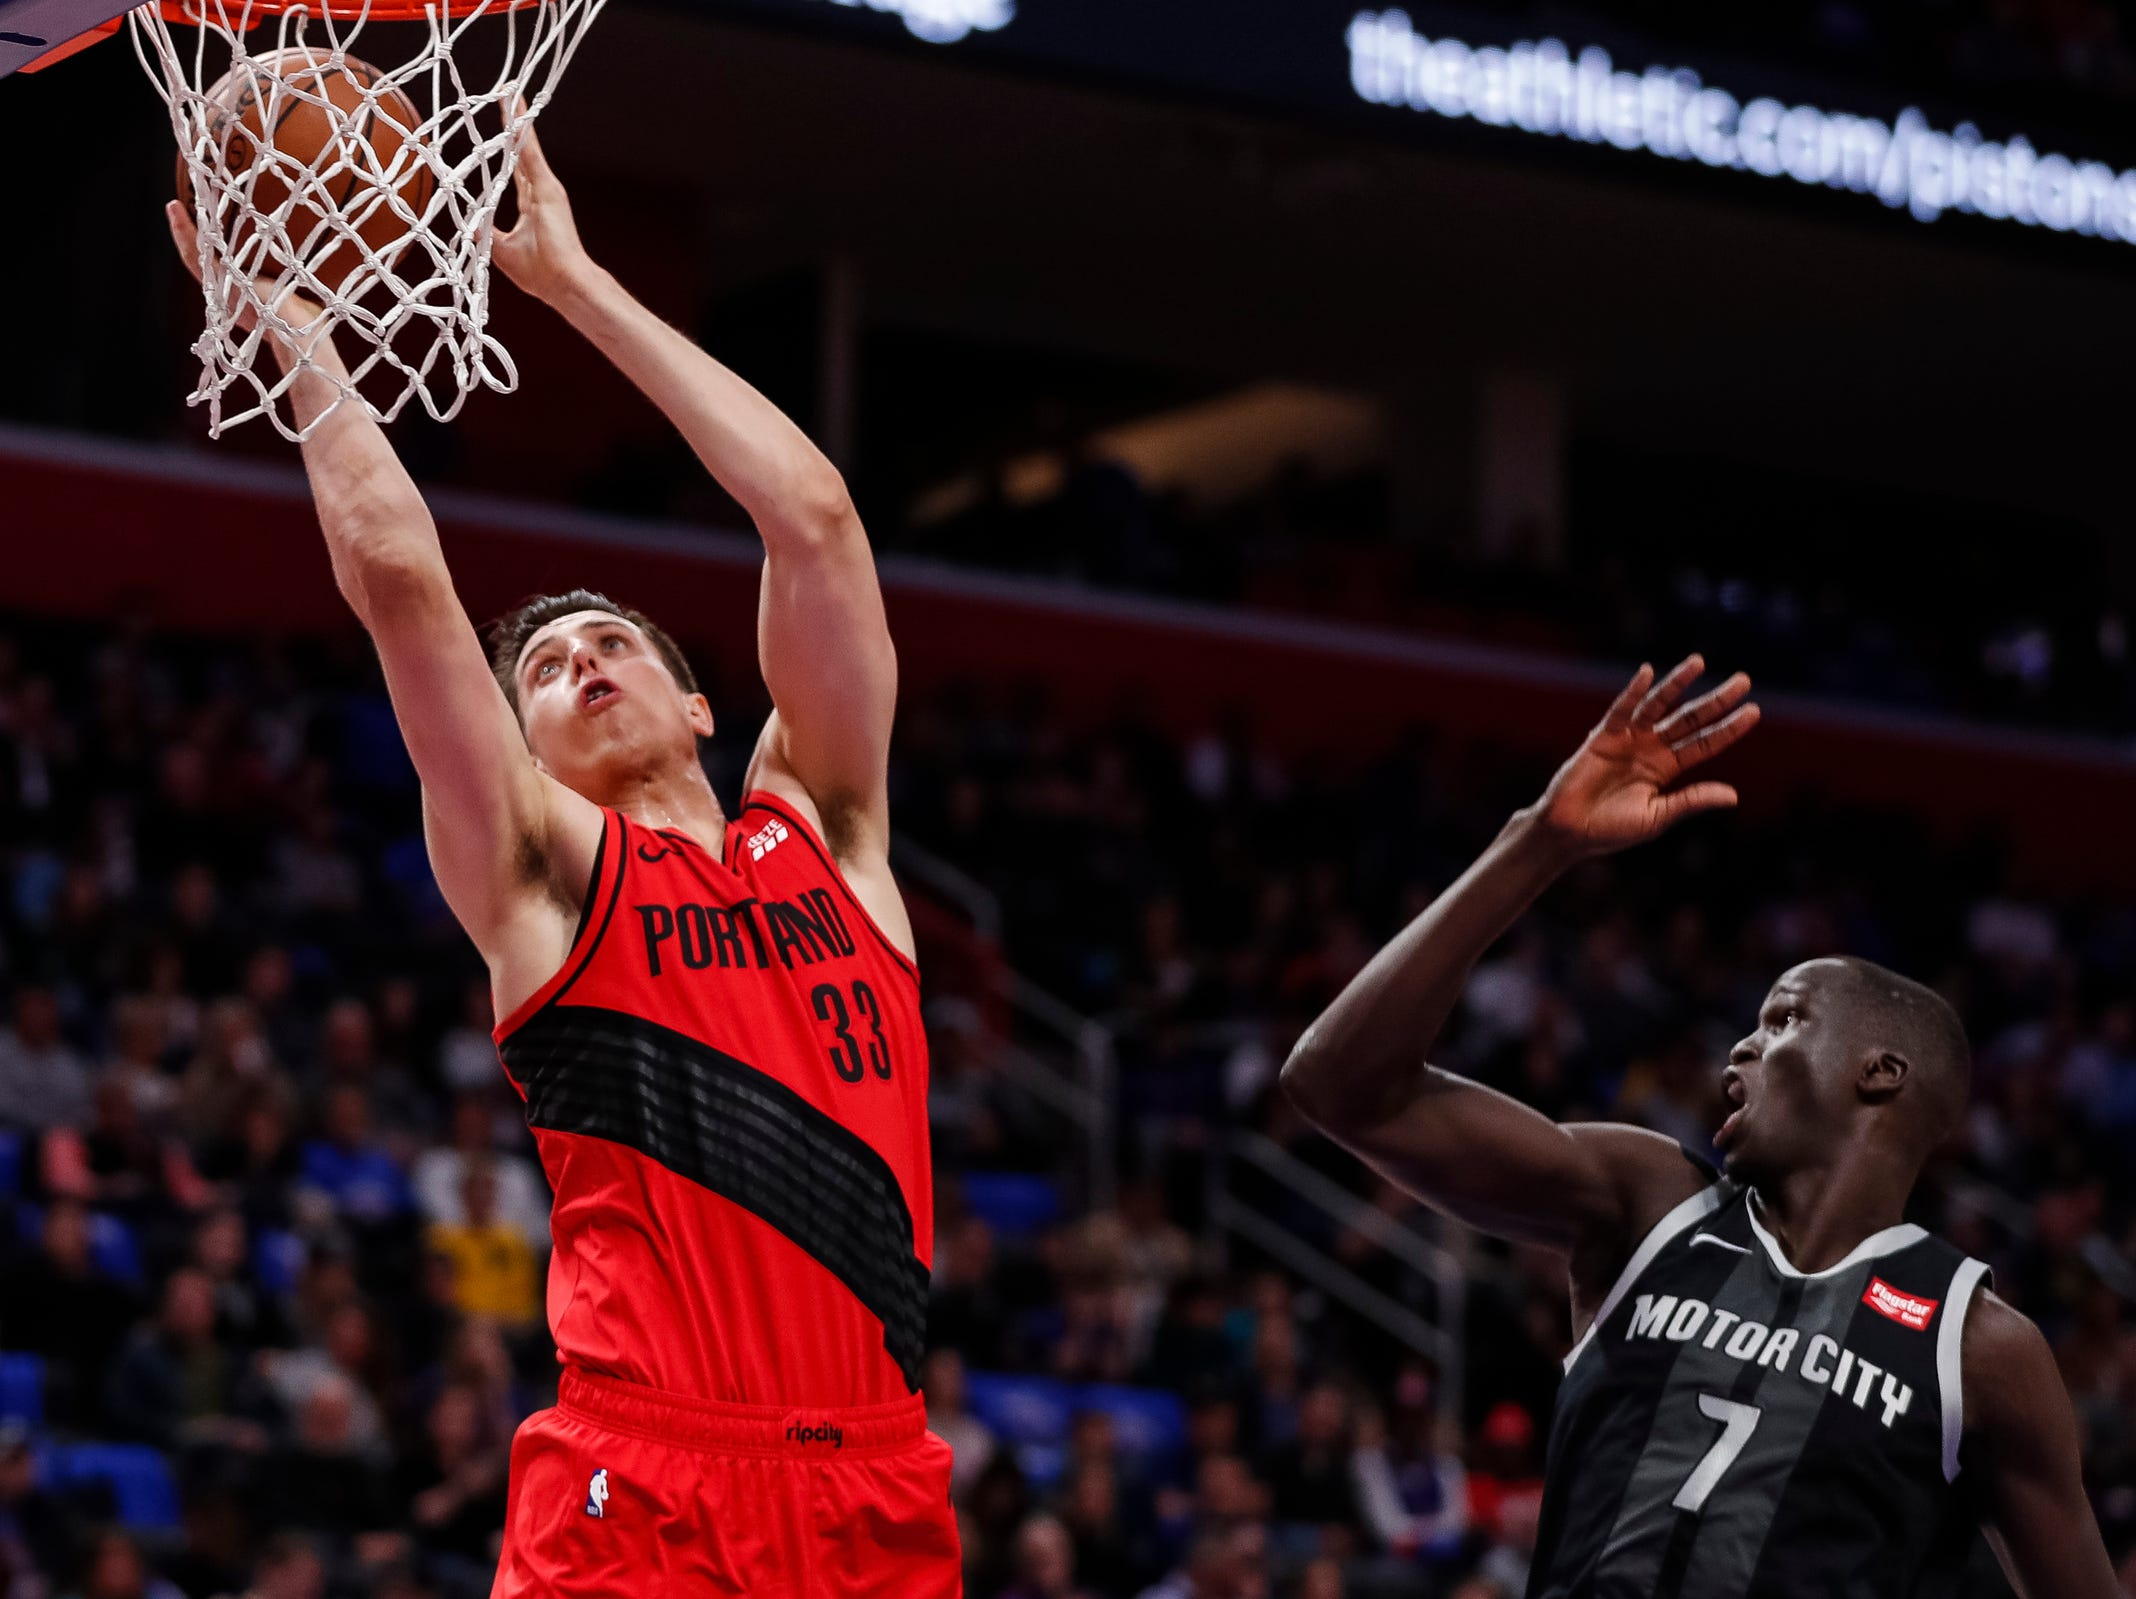 Trail Blazers forward Zach Collins (33) dunks against Pistons forward Thon Maker (7) during the first half at the Little Caesars Arena in Detroit, Saturday, March 30, 2019.